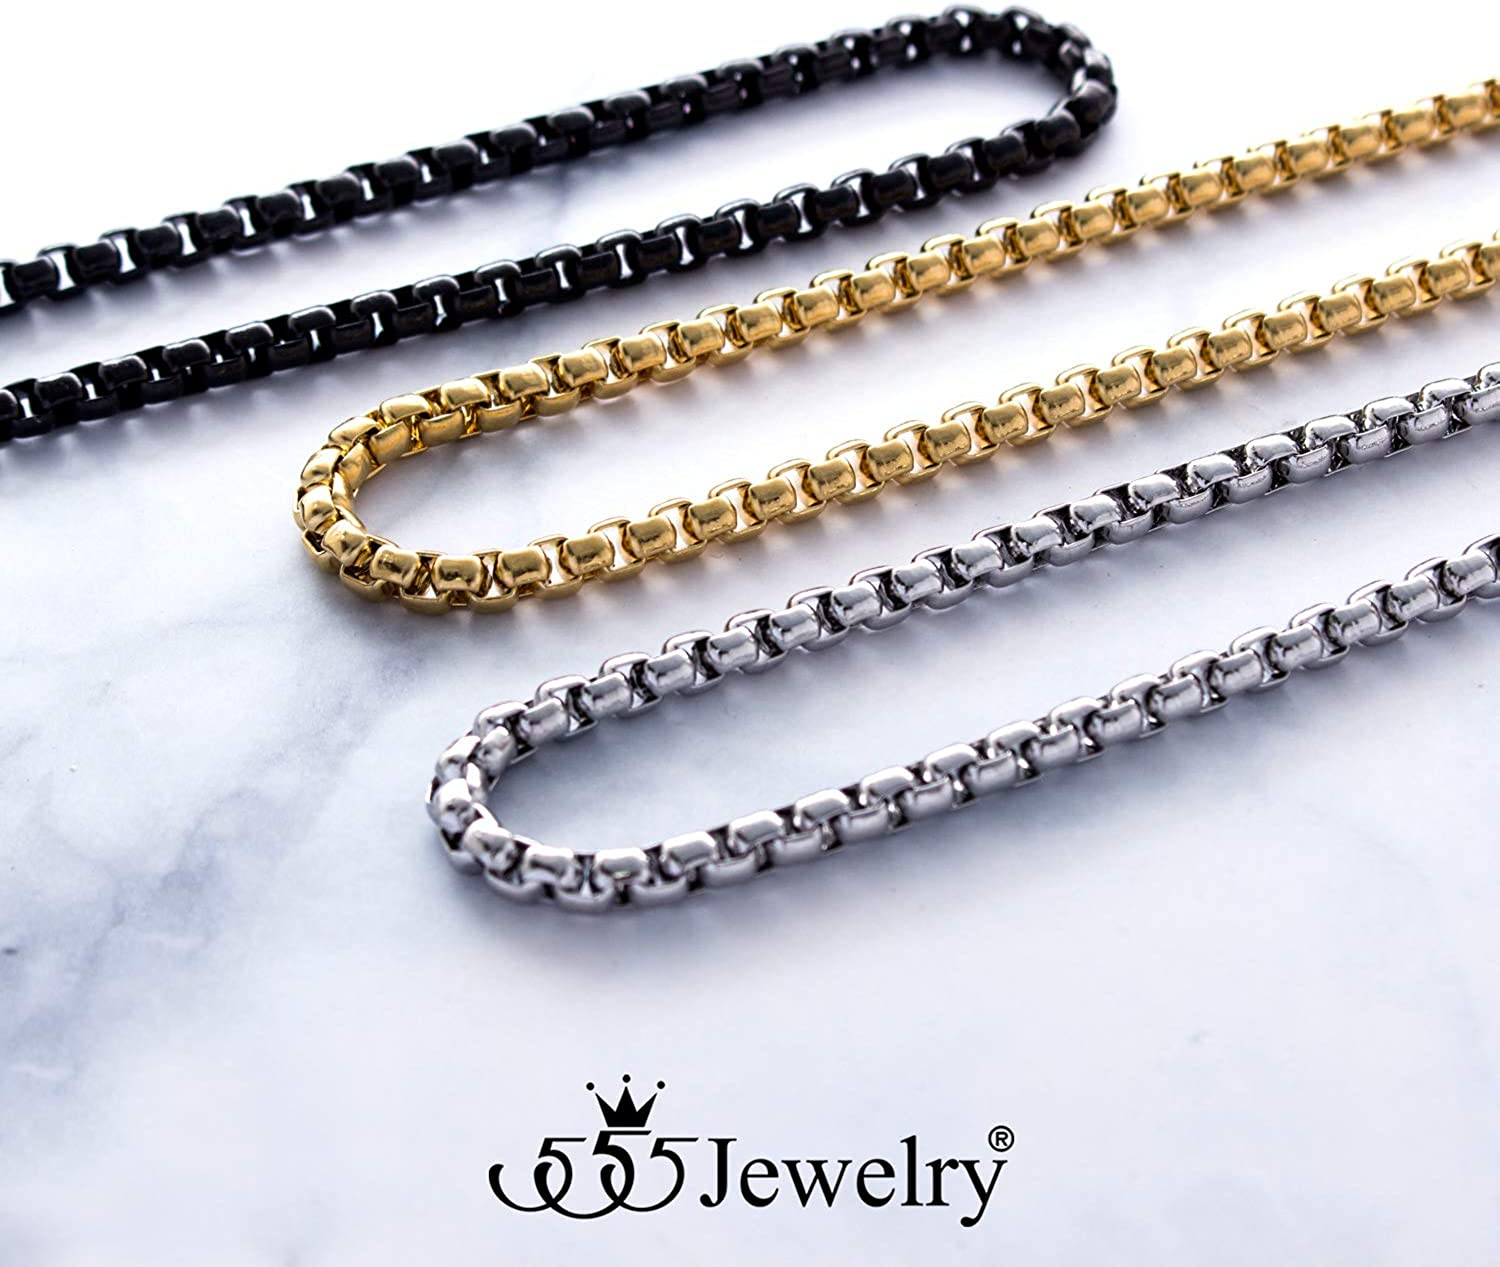 Bulk 2.533.545mm stainelss steel Tetrahedron box chain 2m5m10m for various handicrafts or jewelry